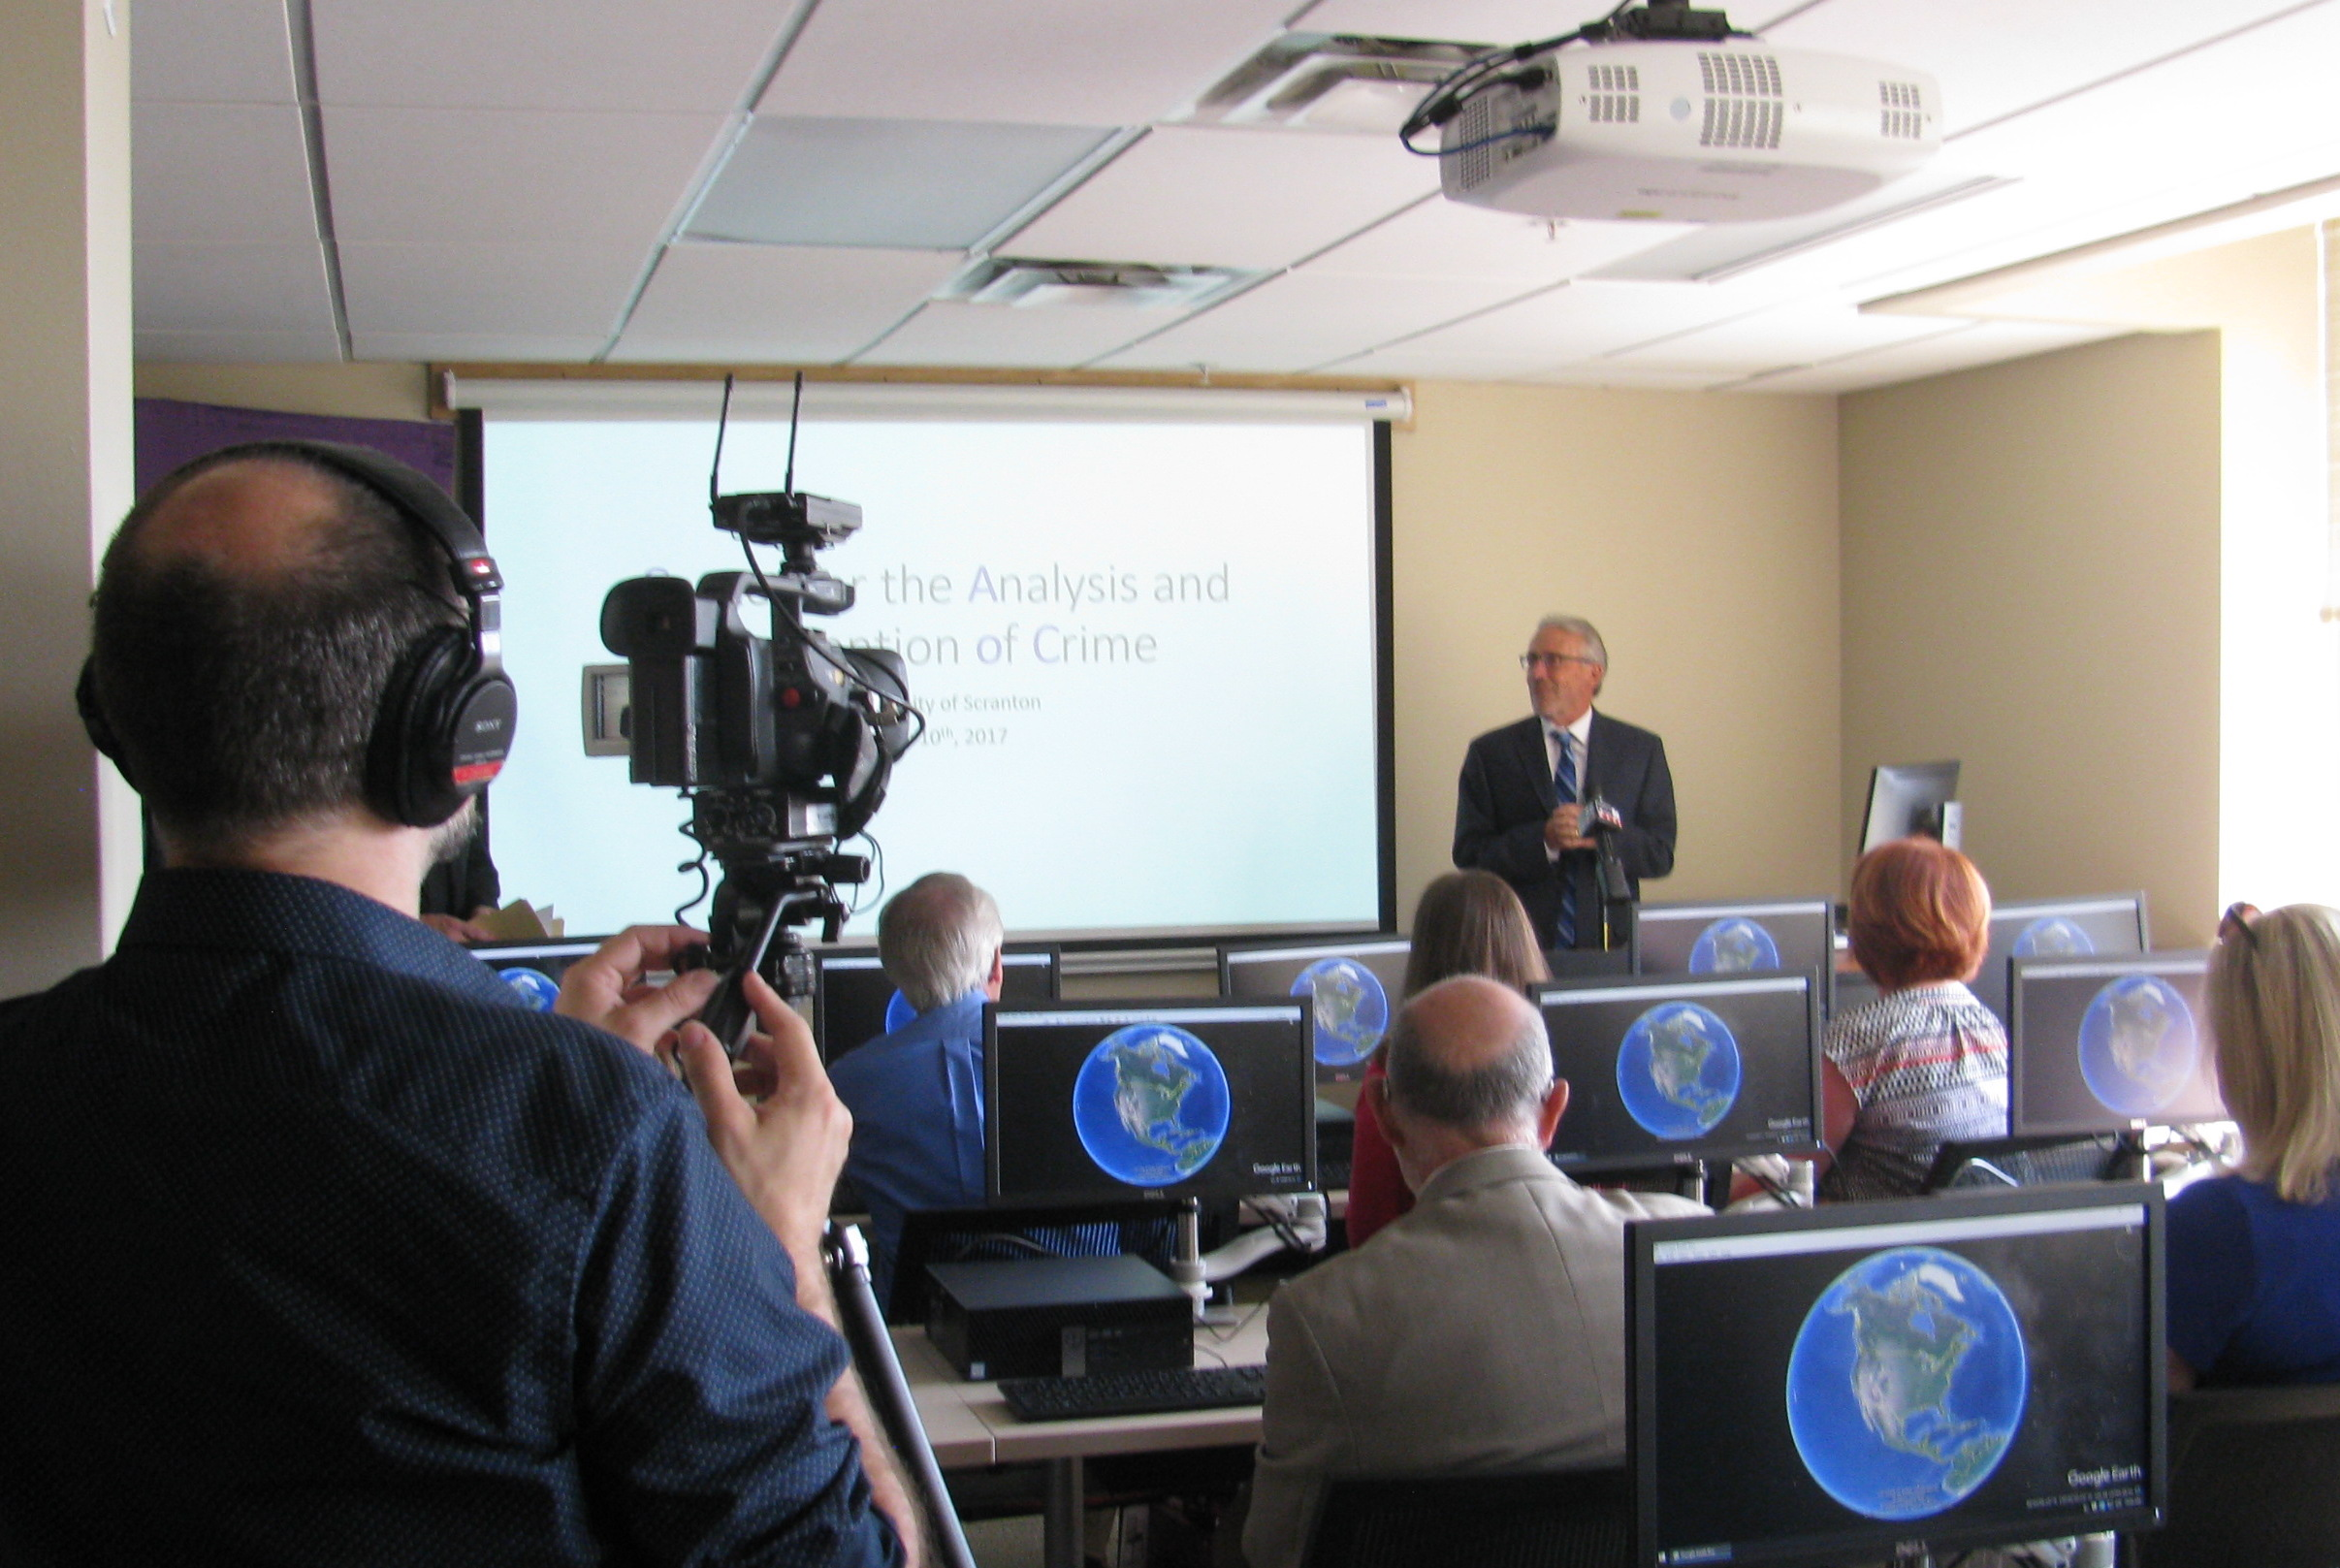 University of Scranton Opens Center for the Analysis and